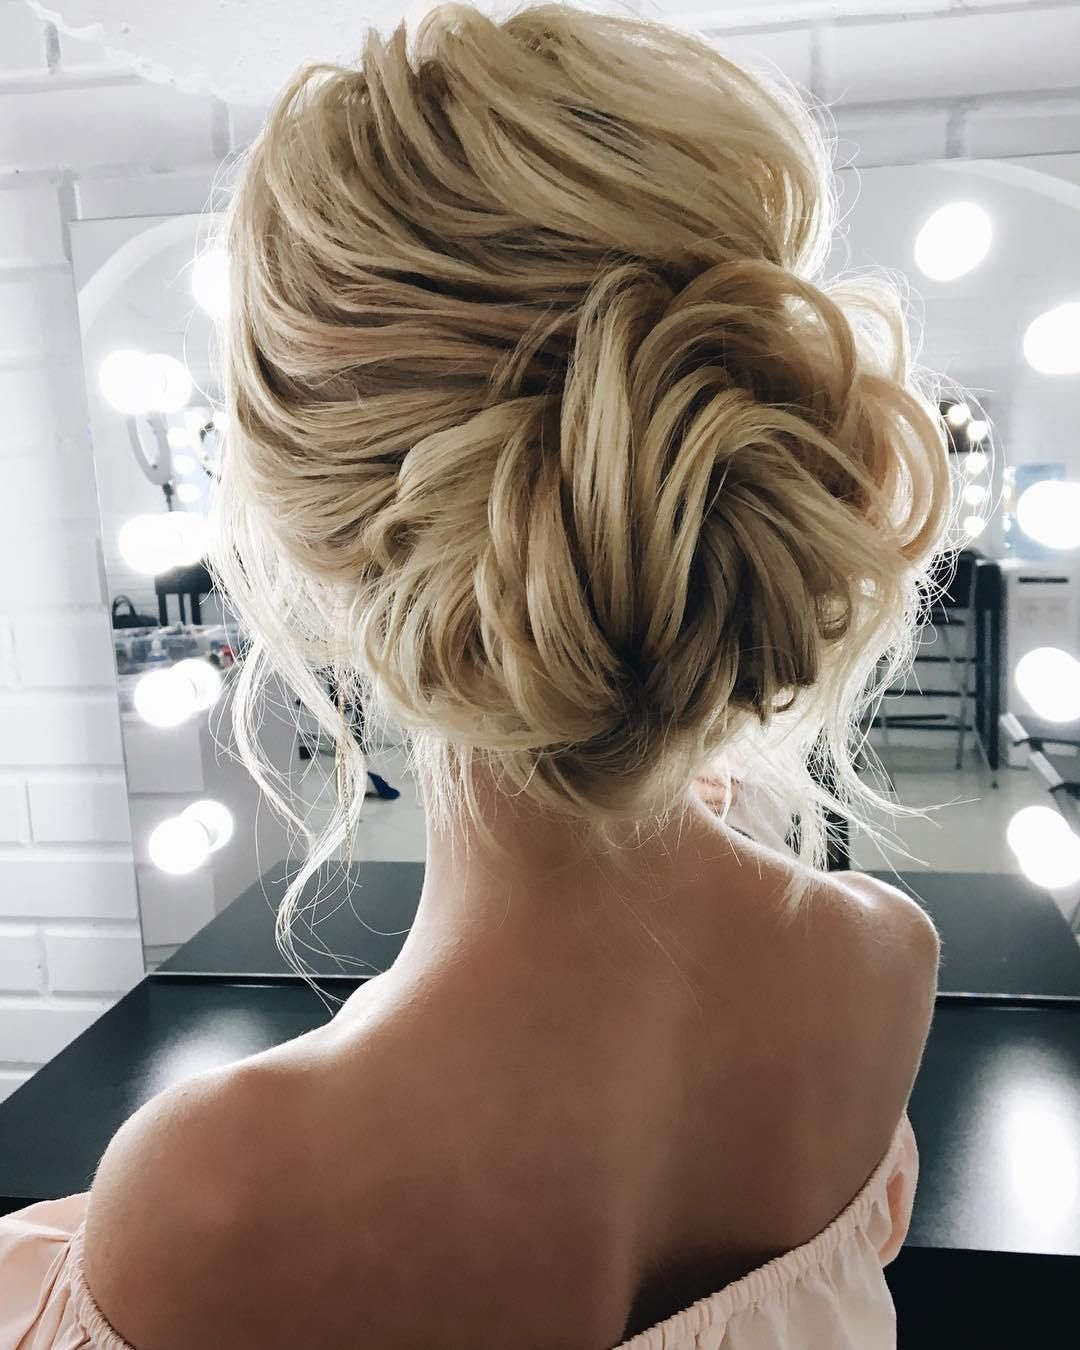 Fabulous Textured Updo Hairstyle 1 Top Ideas To Try Recipes